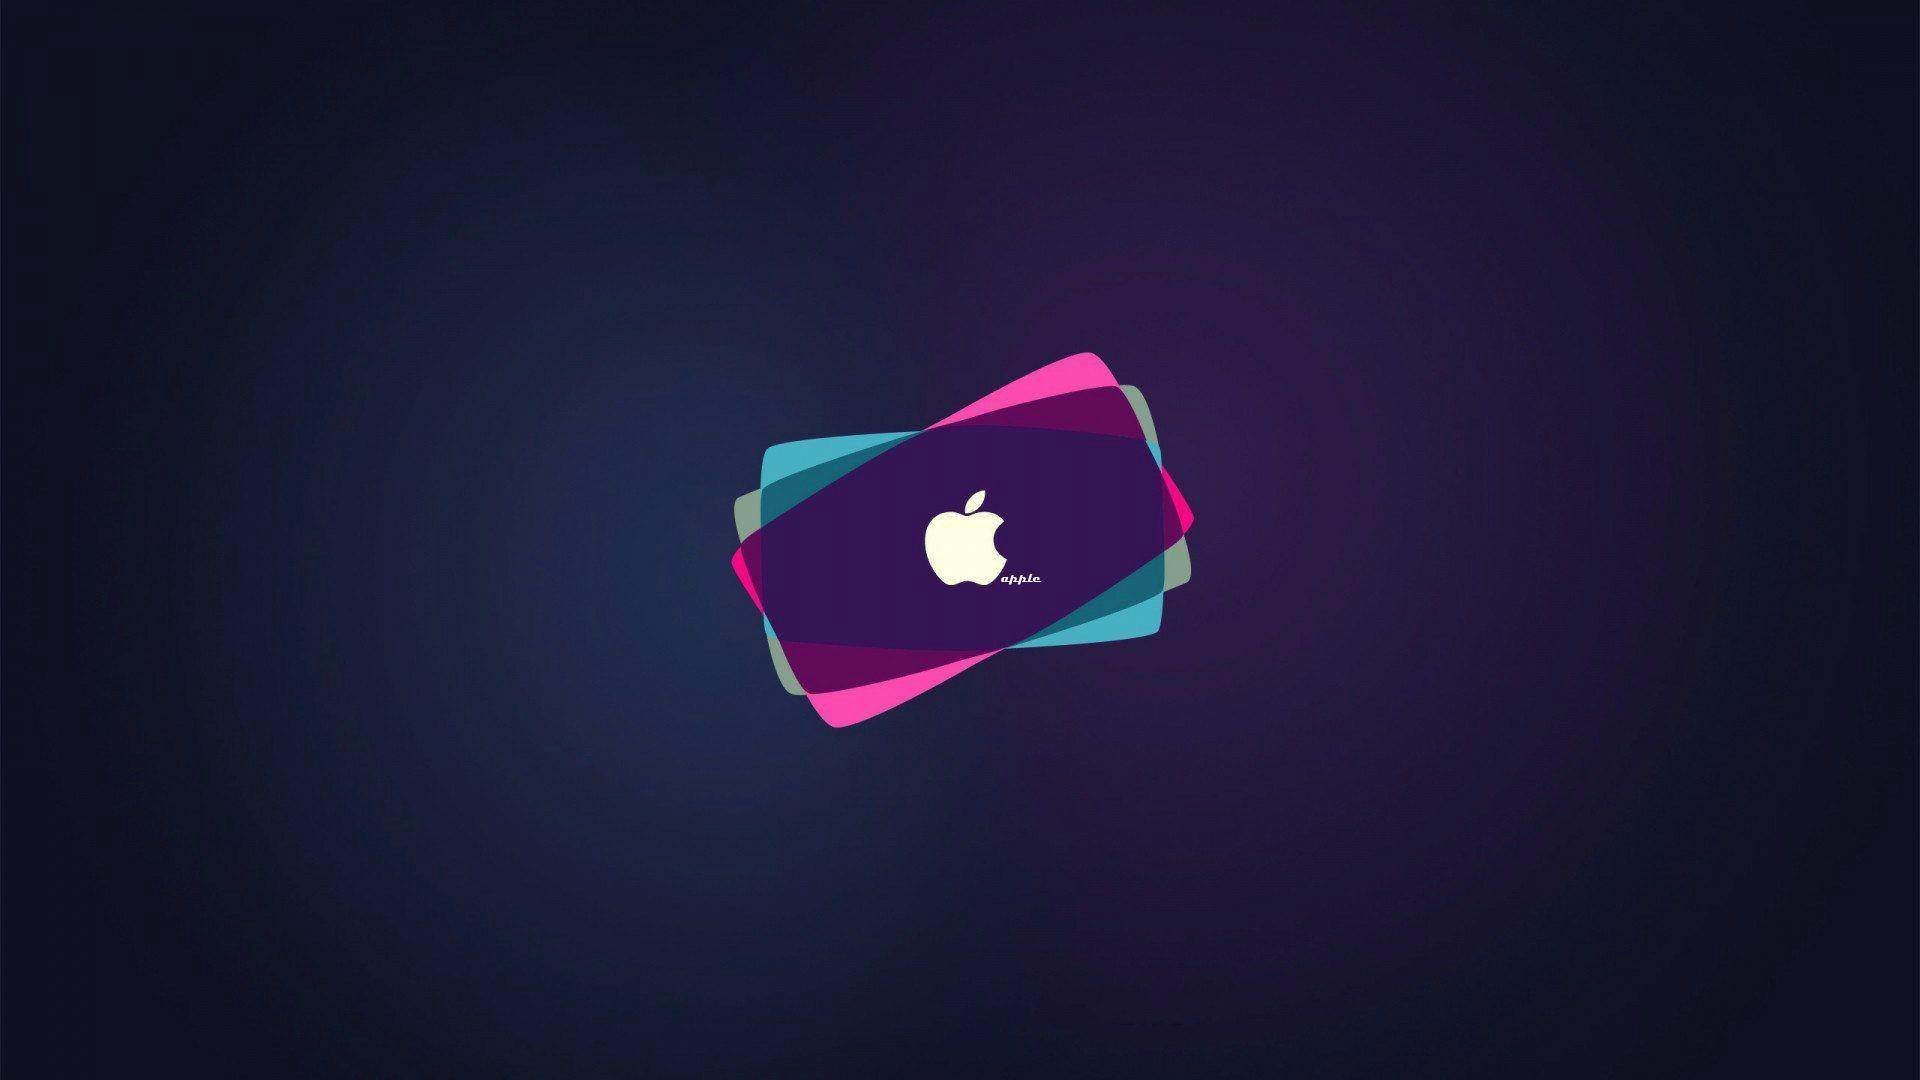 Mac os backgrounds wallpaper cave - Mac os x wallpaper 1920x1080 ...